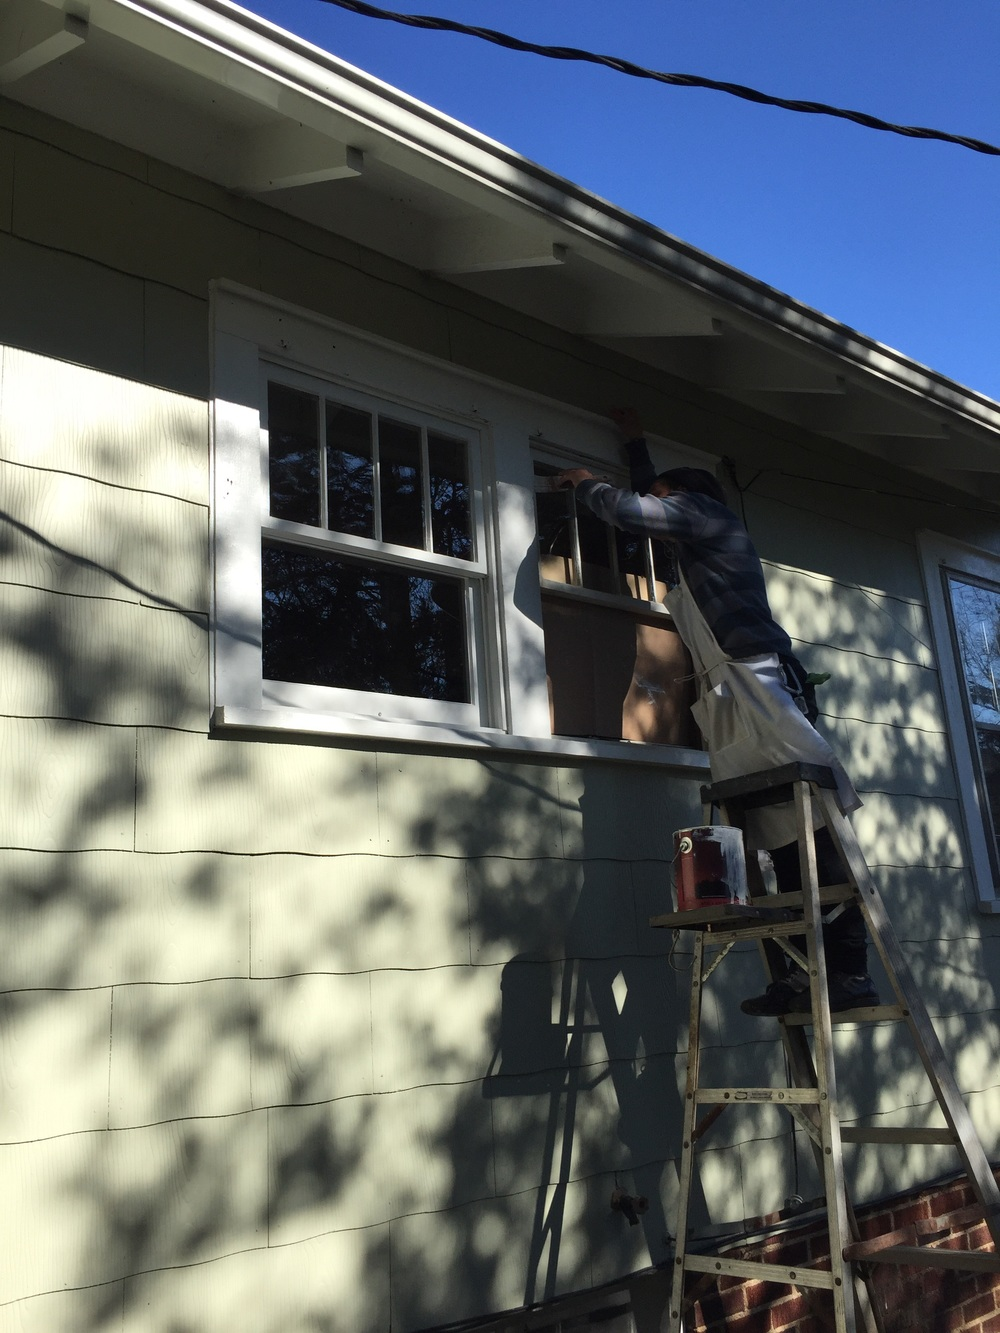 Here Mikey is applying the finish coat of Benjamin Moore aura, making it look easy.